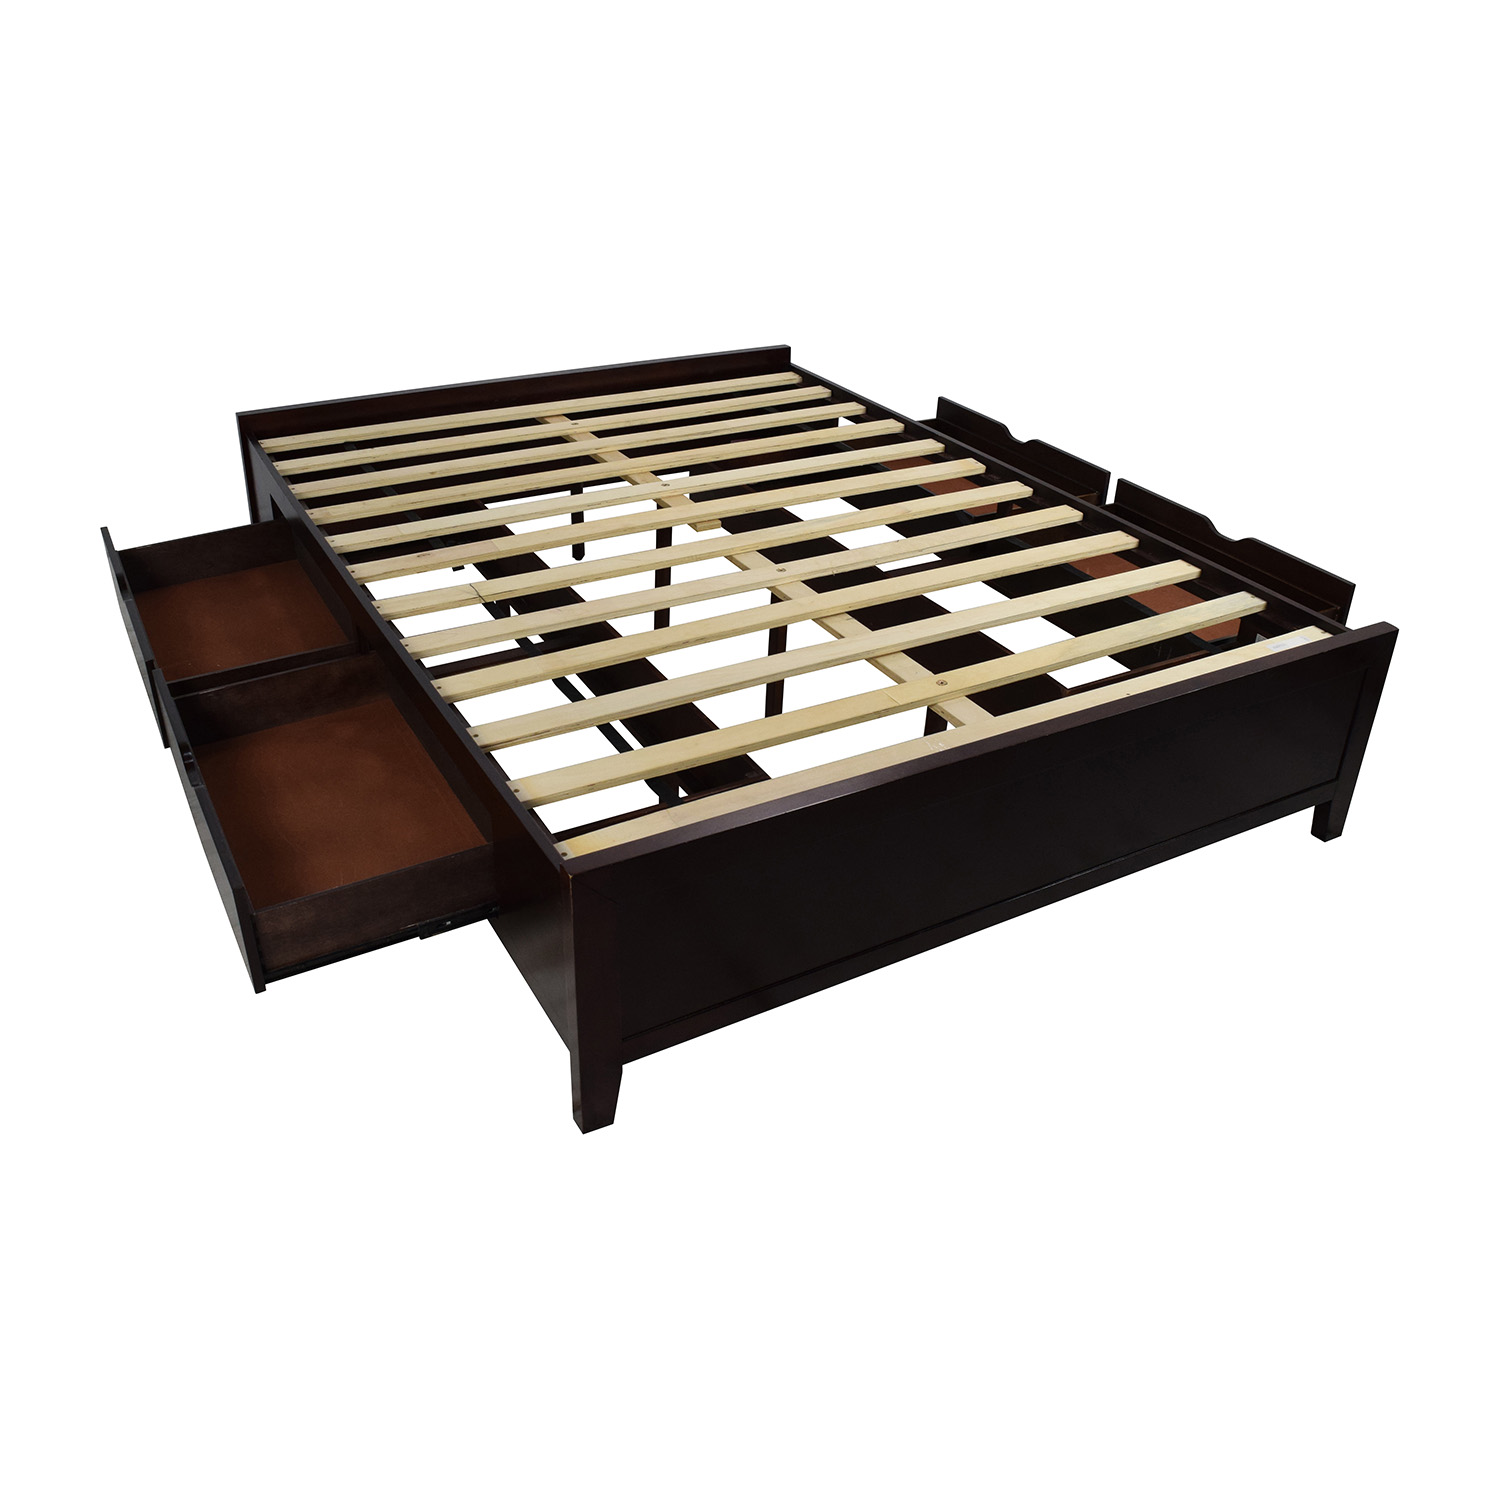 67 off wooden queen size storage bed frame beds for Queen size bed frame